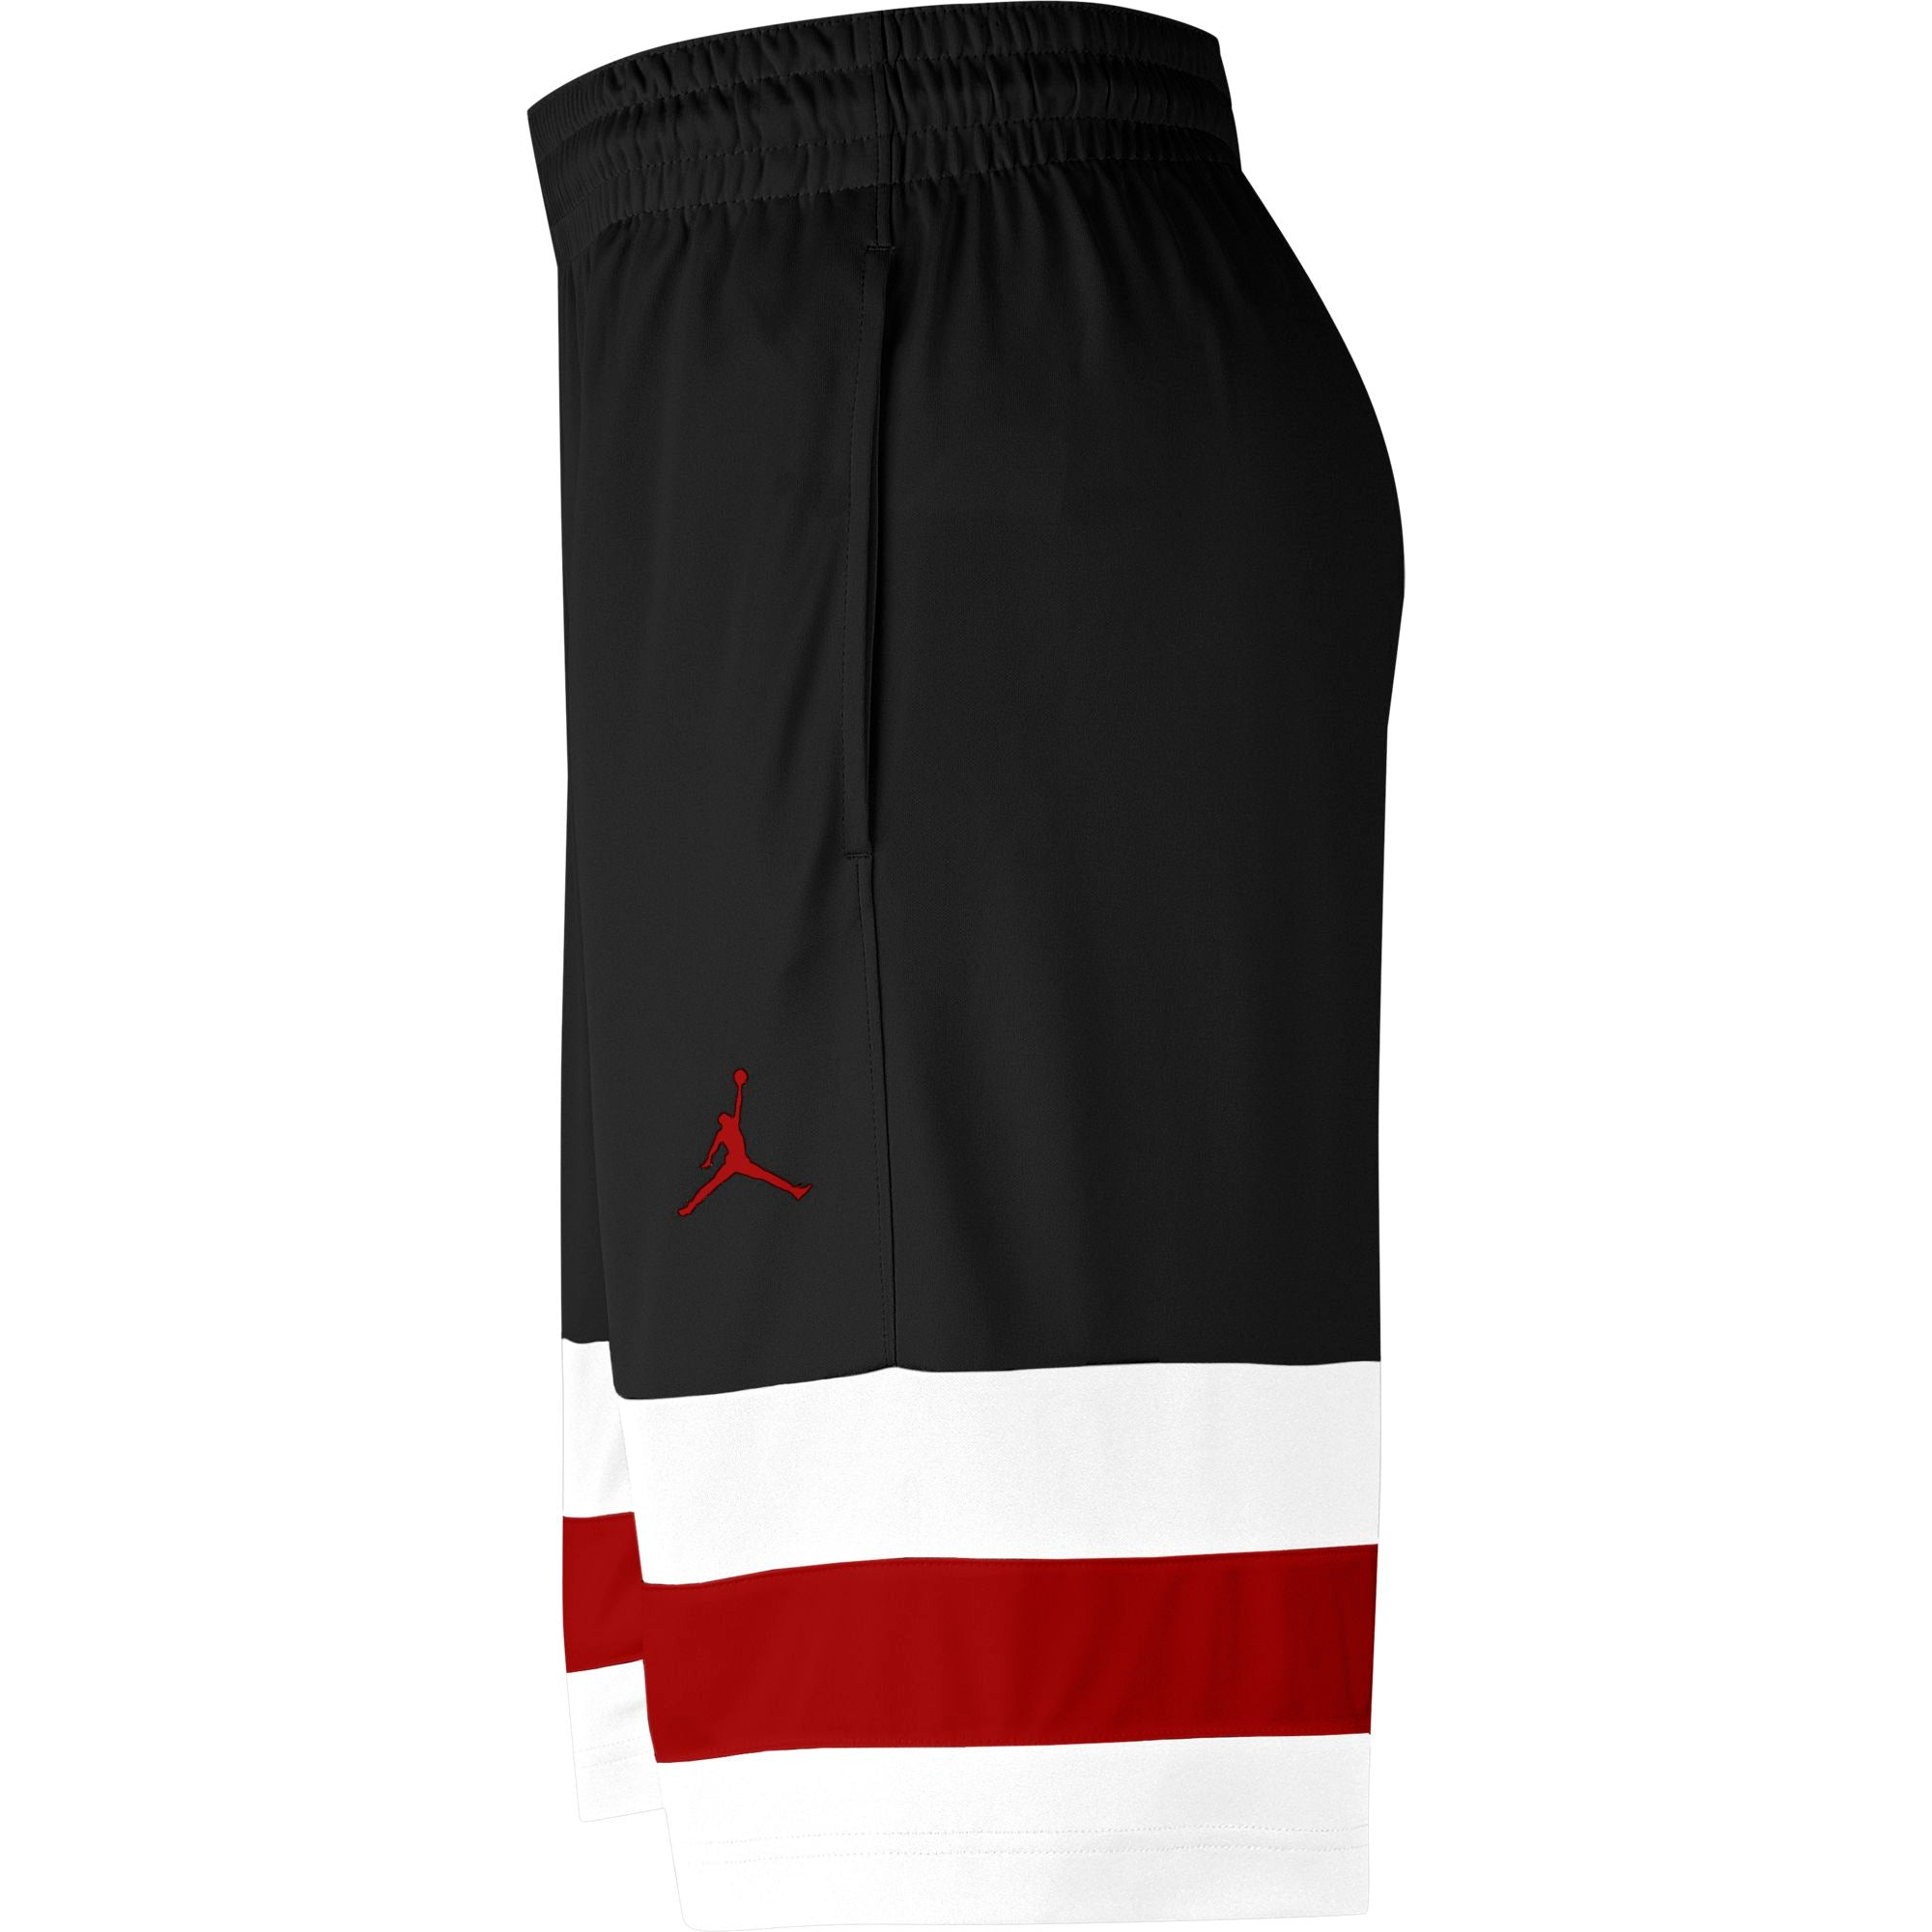 Nike Jordan Jumpman Hooped Basketball Shorts - Black/White/Gym Red